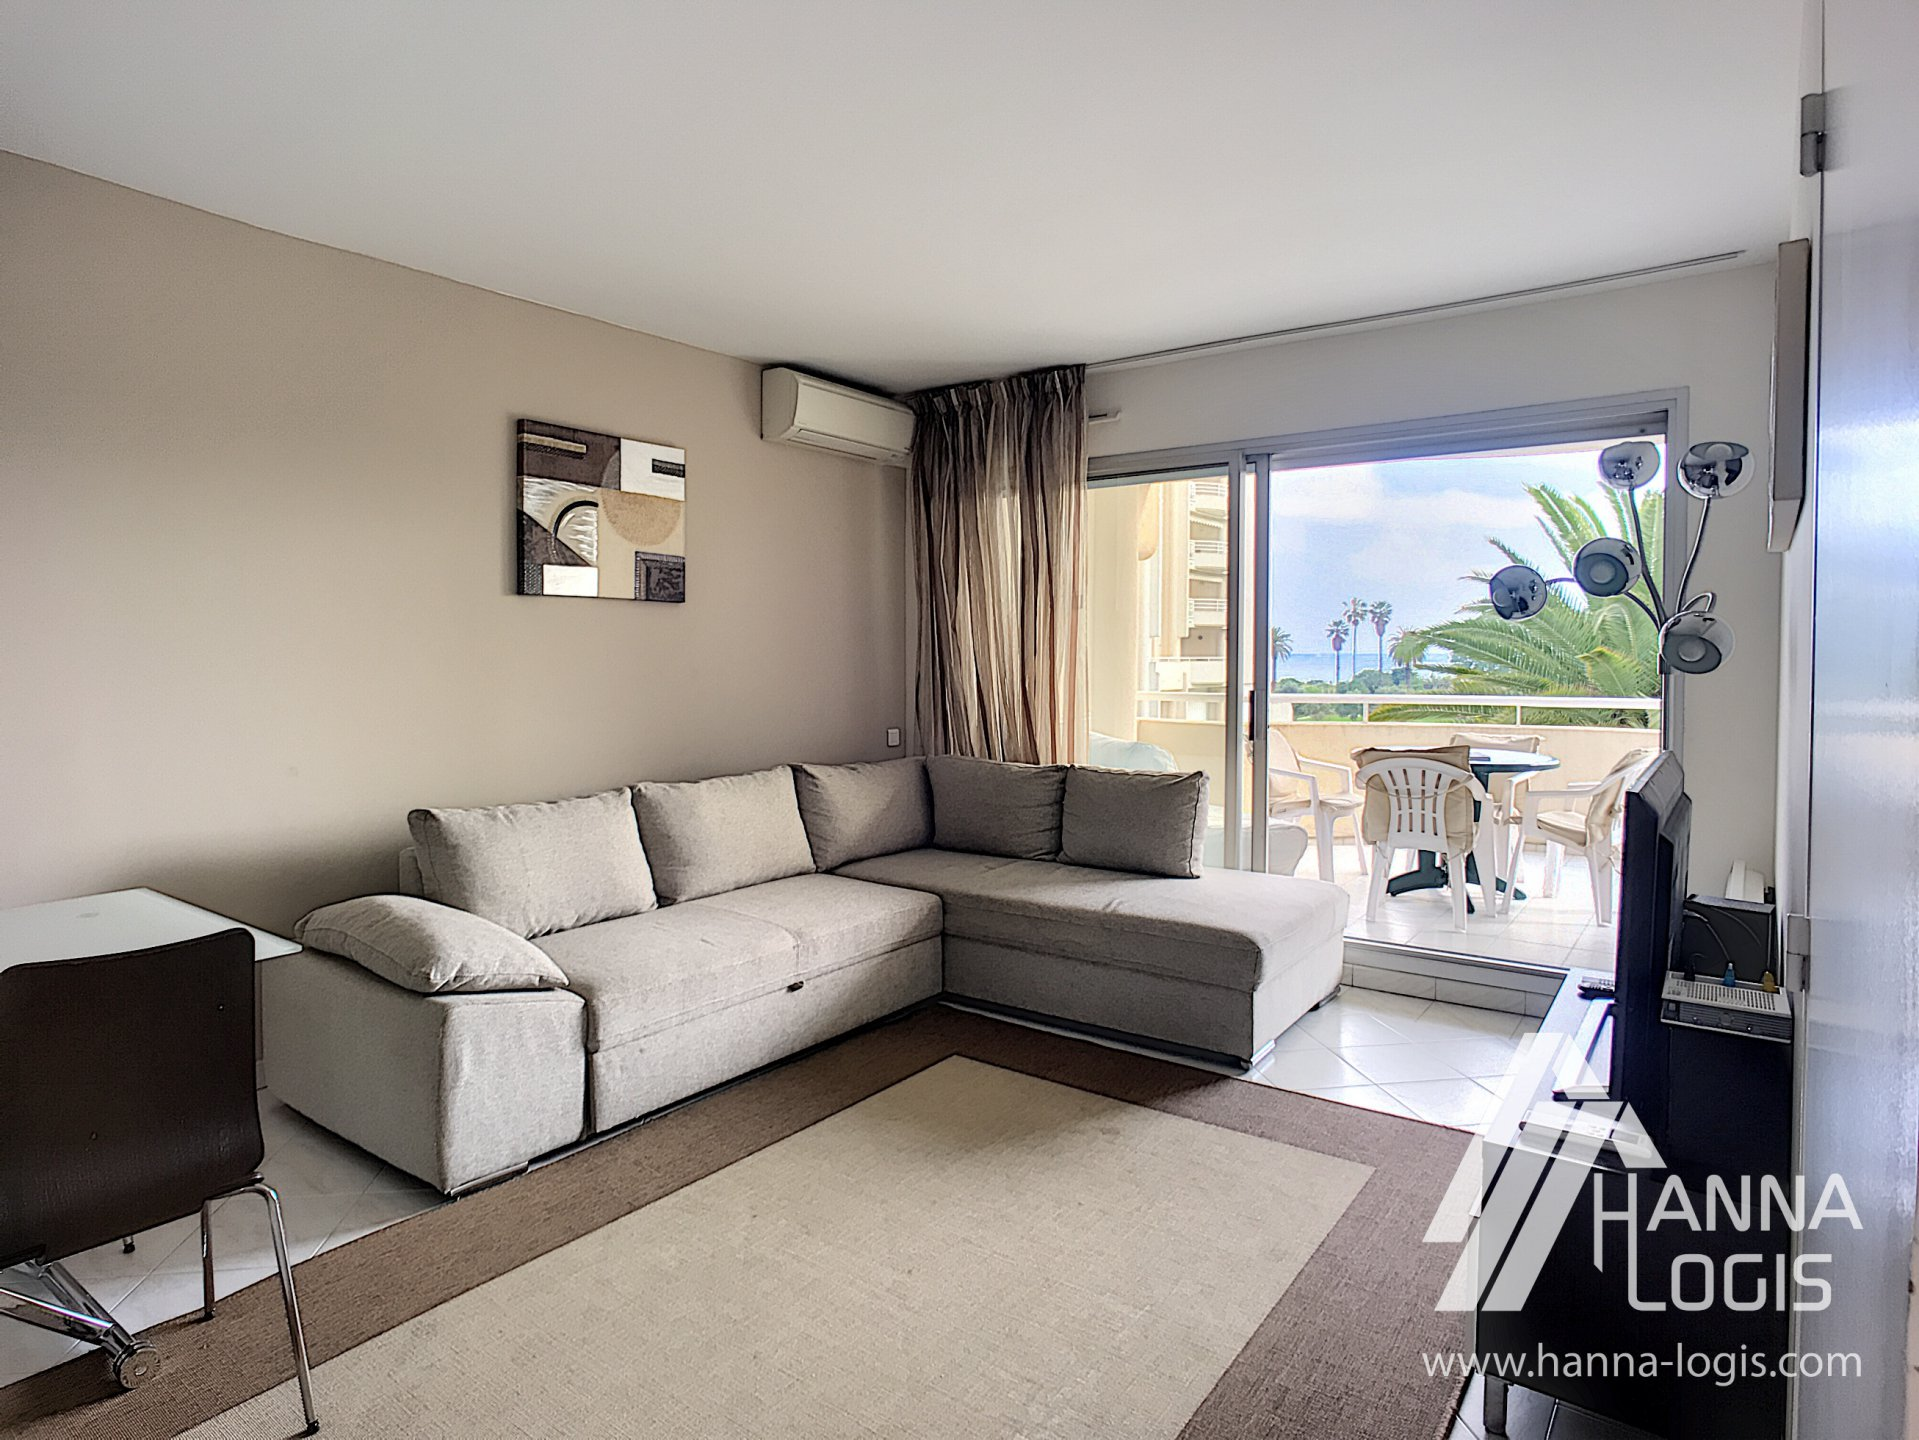 Nice 2 rooms apartement with the sea view, pool, park